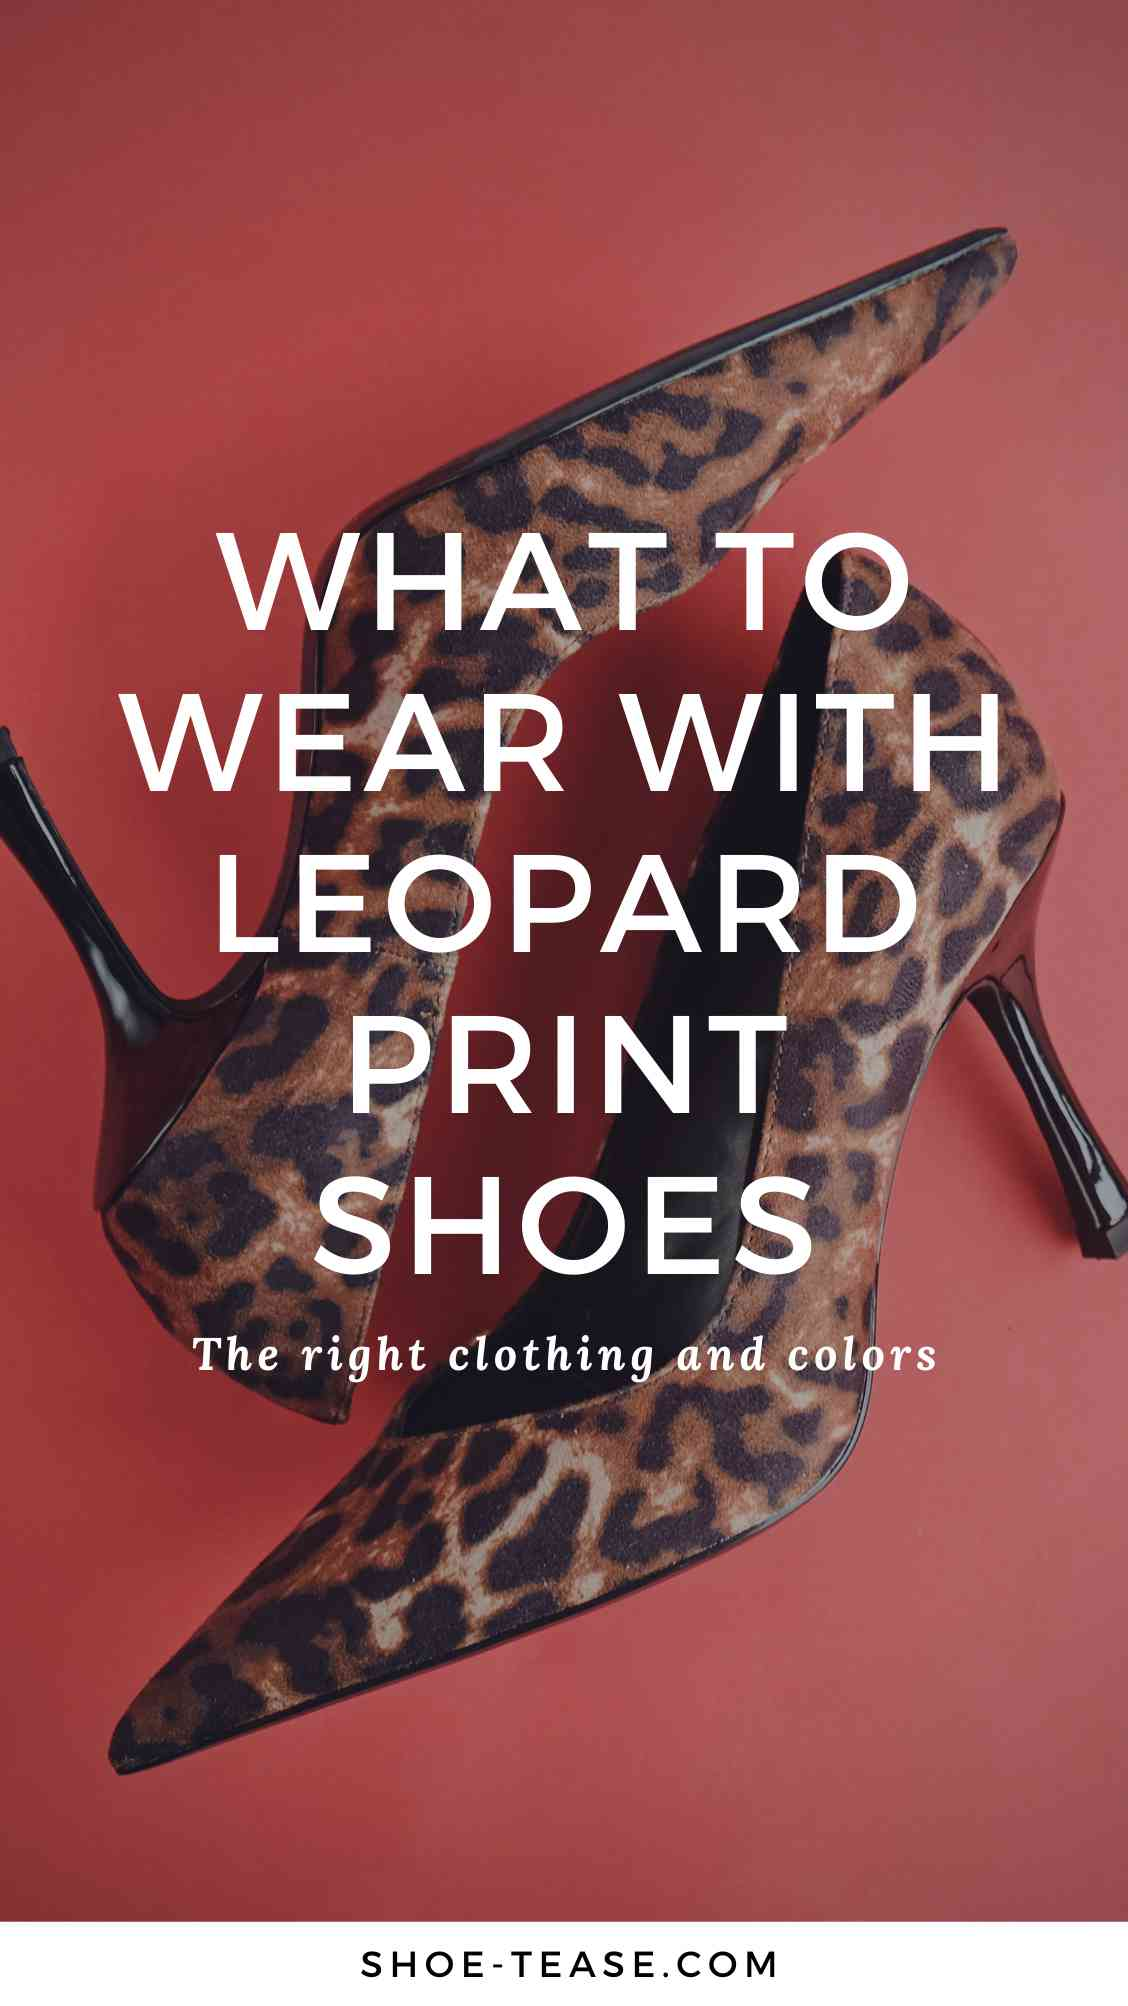 """Caption """"What to wear with leopard print shoes"""" in white lettering over image of leopard print heels on red background."""